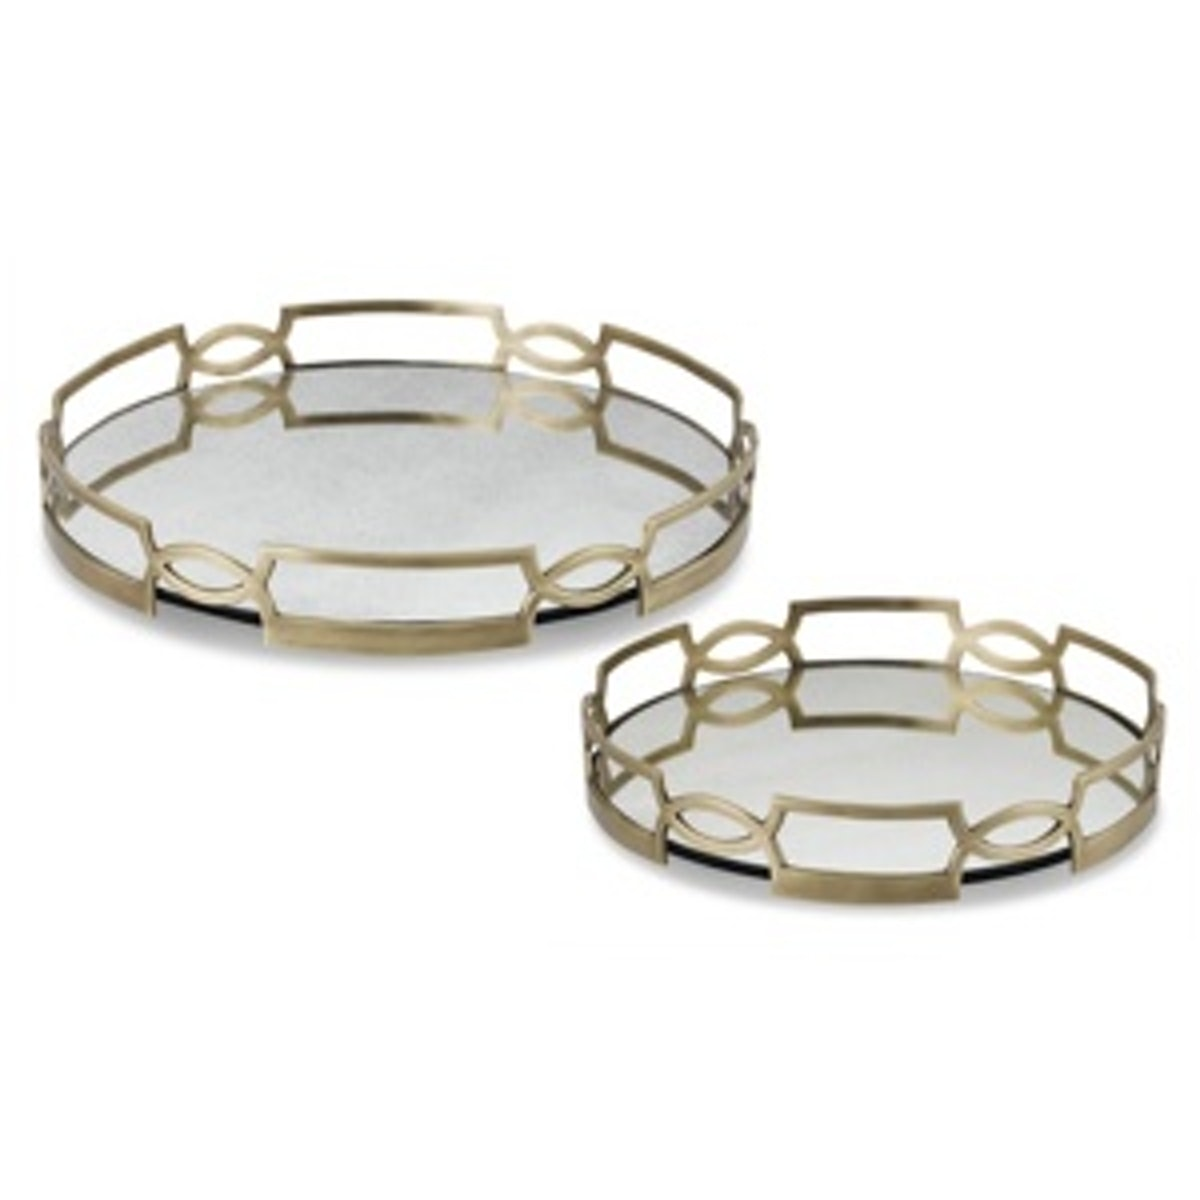 Antique Mirrored Trays